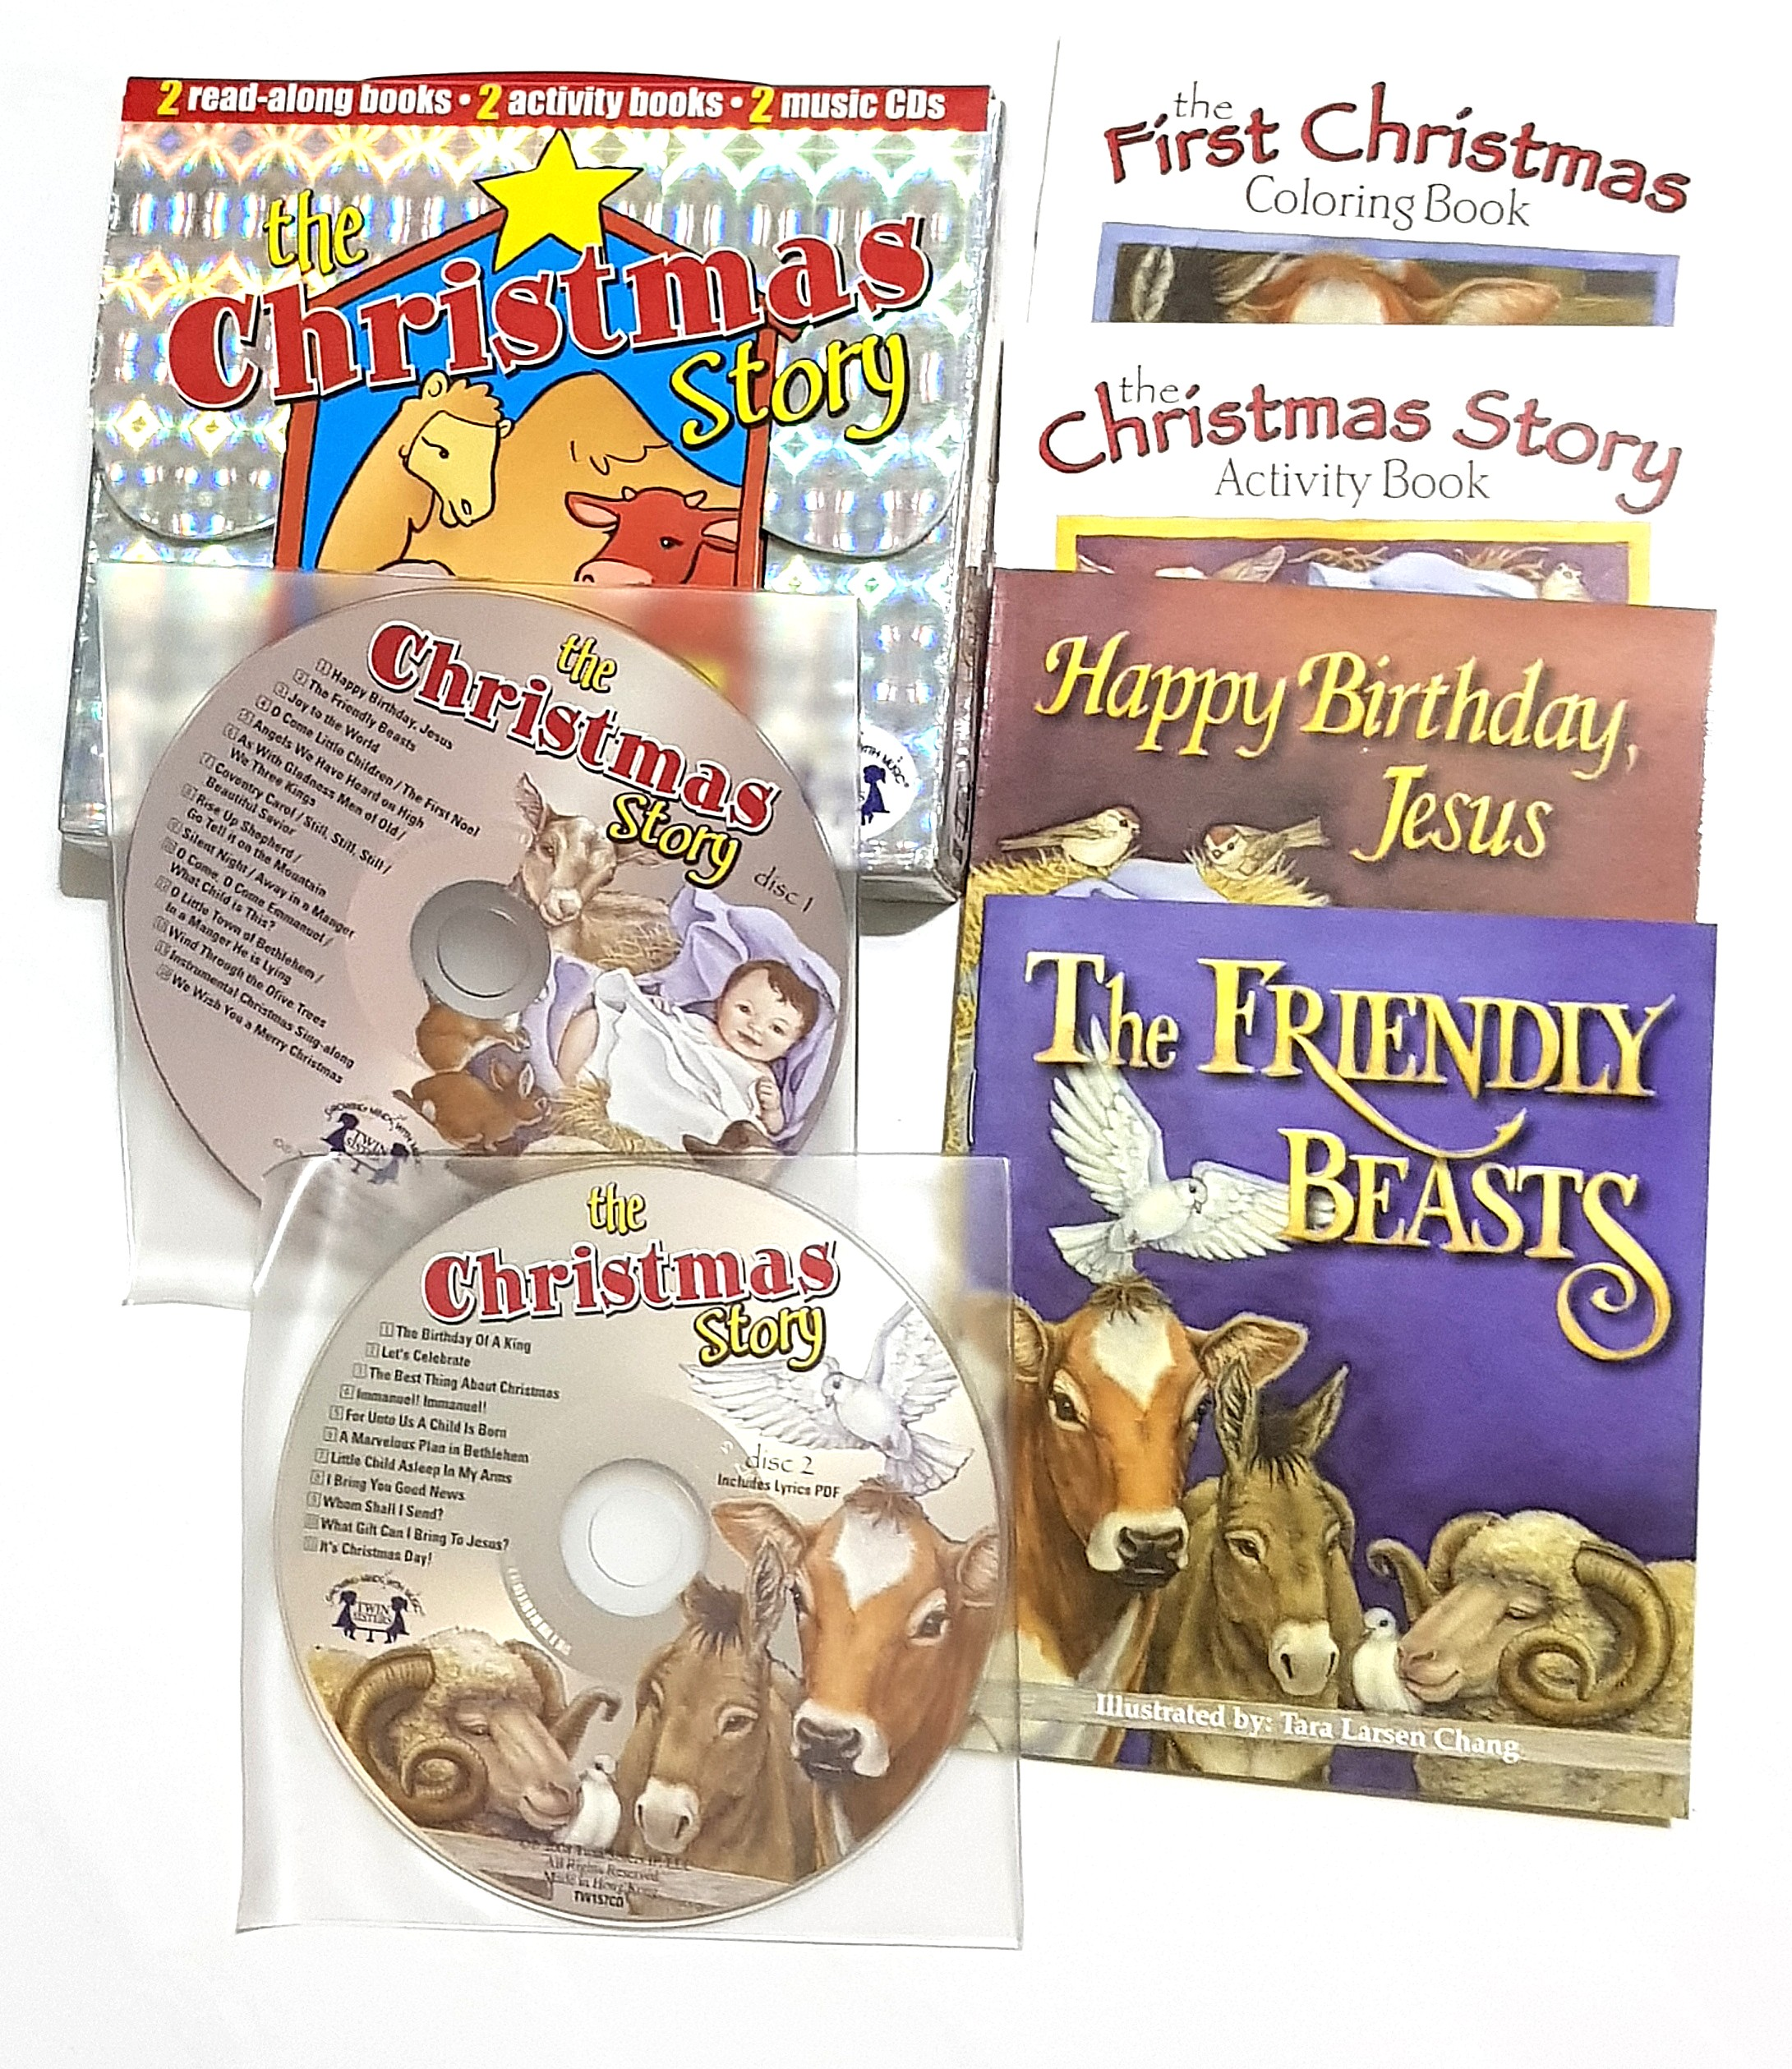 Christmas Story 2.Brand New 2 Music Cds Christmas Story 2 Read Along Books 2 Activity Books Twin Sisters